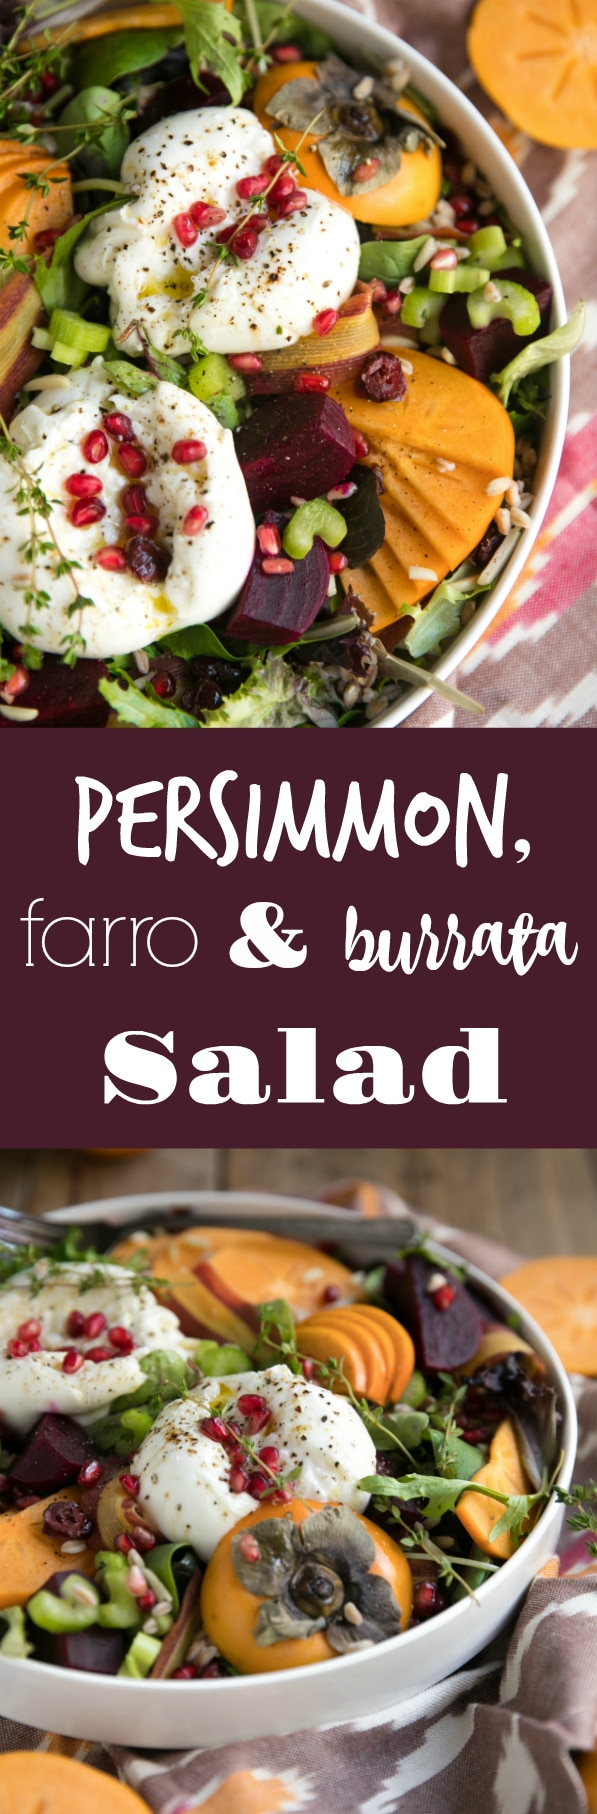 Persimmon, Farro, and Burrata Salad with Easy Balsamic Vinaigrette via @theforkedspoon #salad #farro #easyrecipe #burrata #autumn